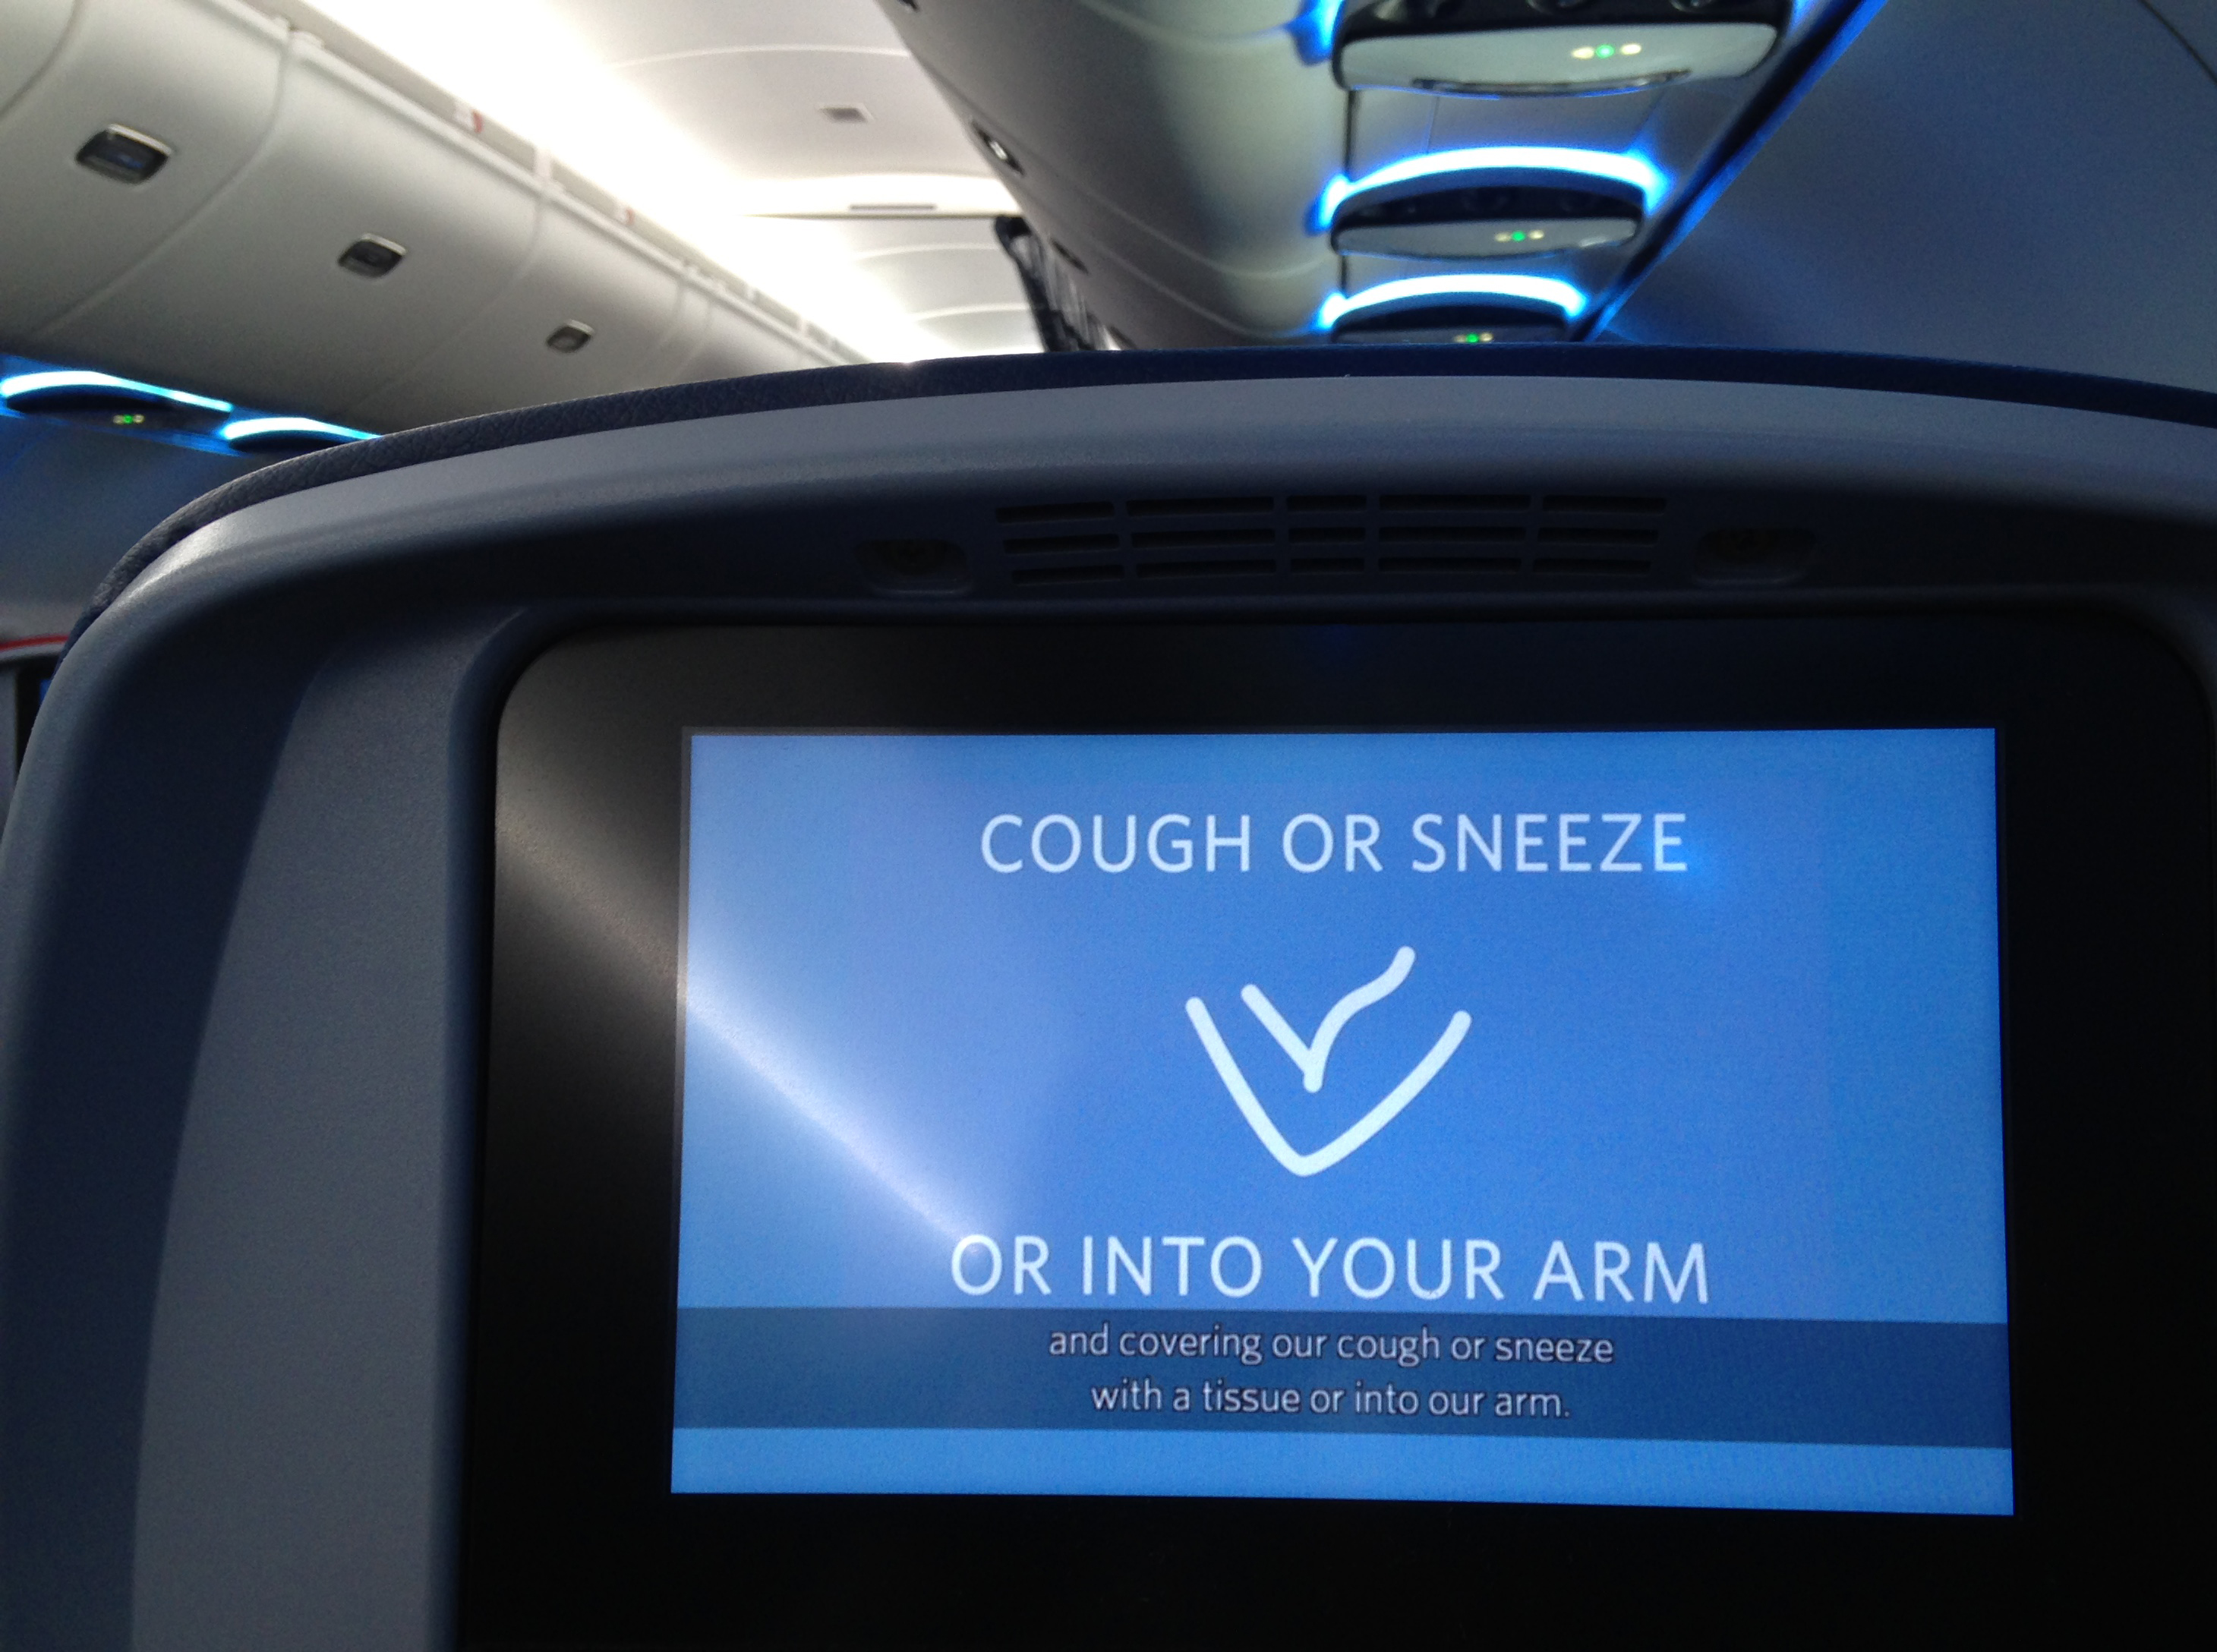 A video invites passengers to safely cough in their elbows before a Delta flight departs from MinneapolisSaint Paul International Airport on April 25, 2020. (Photo by SEBASTIEN DUVAL/AFP via Getty Images)